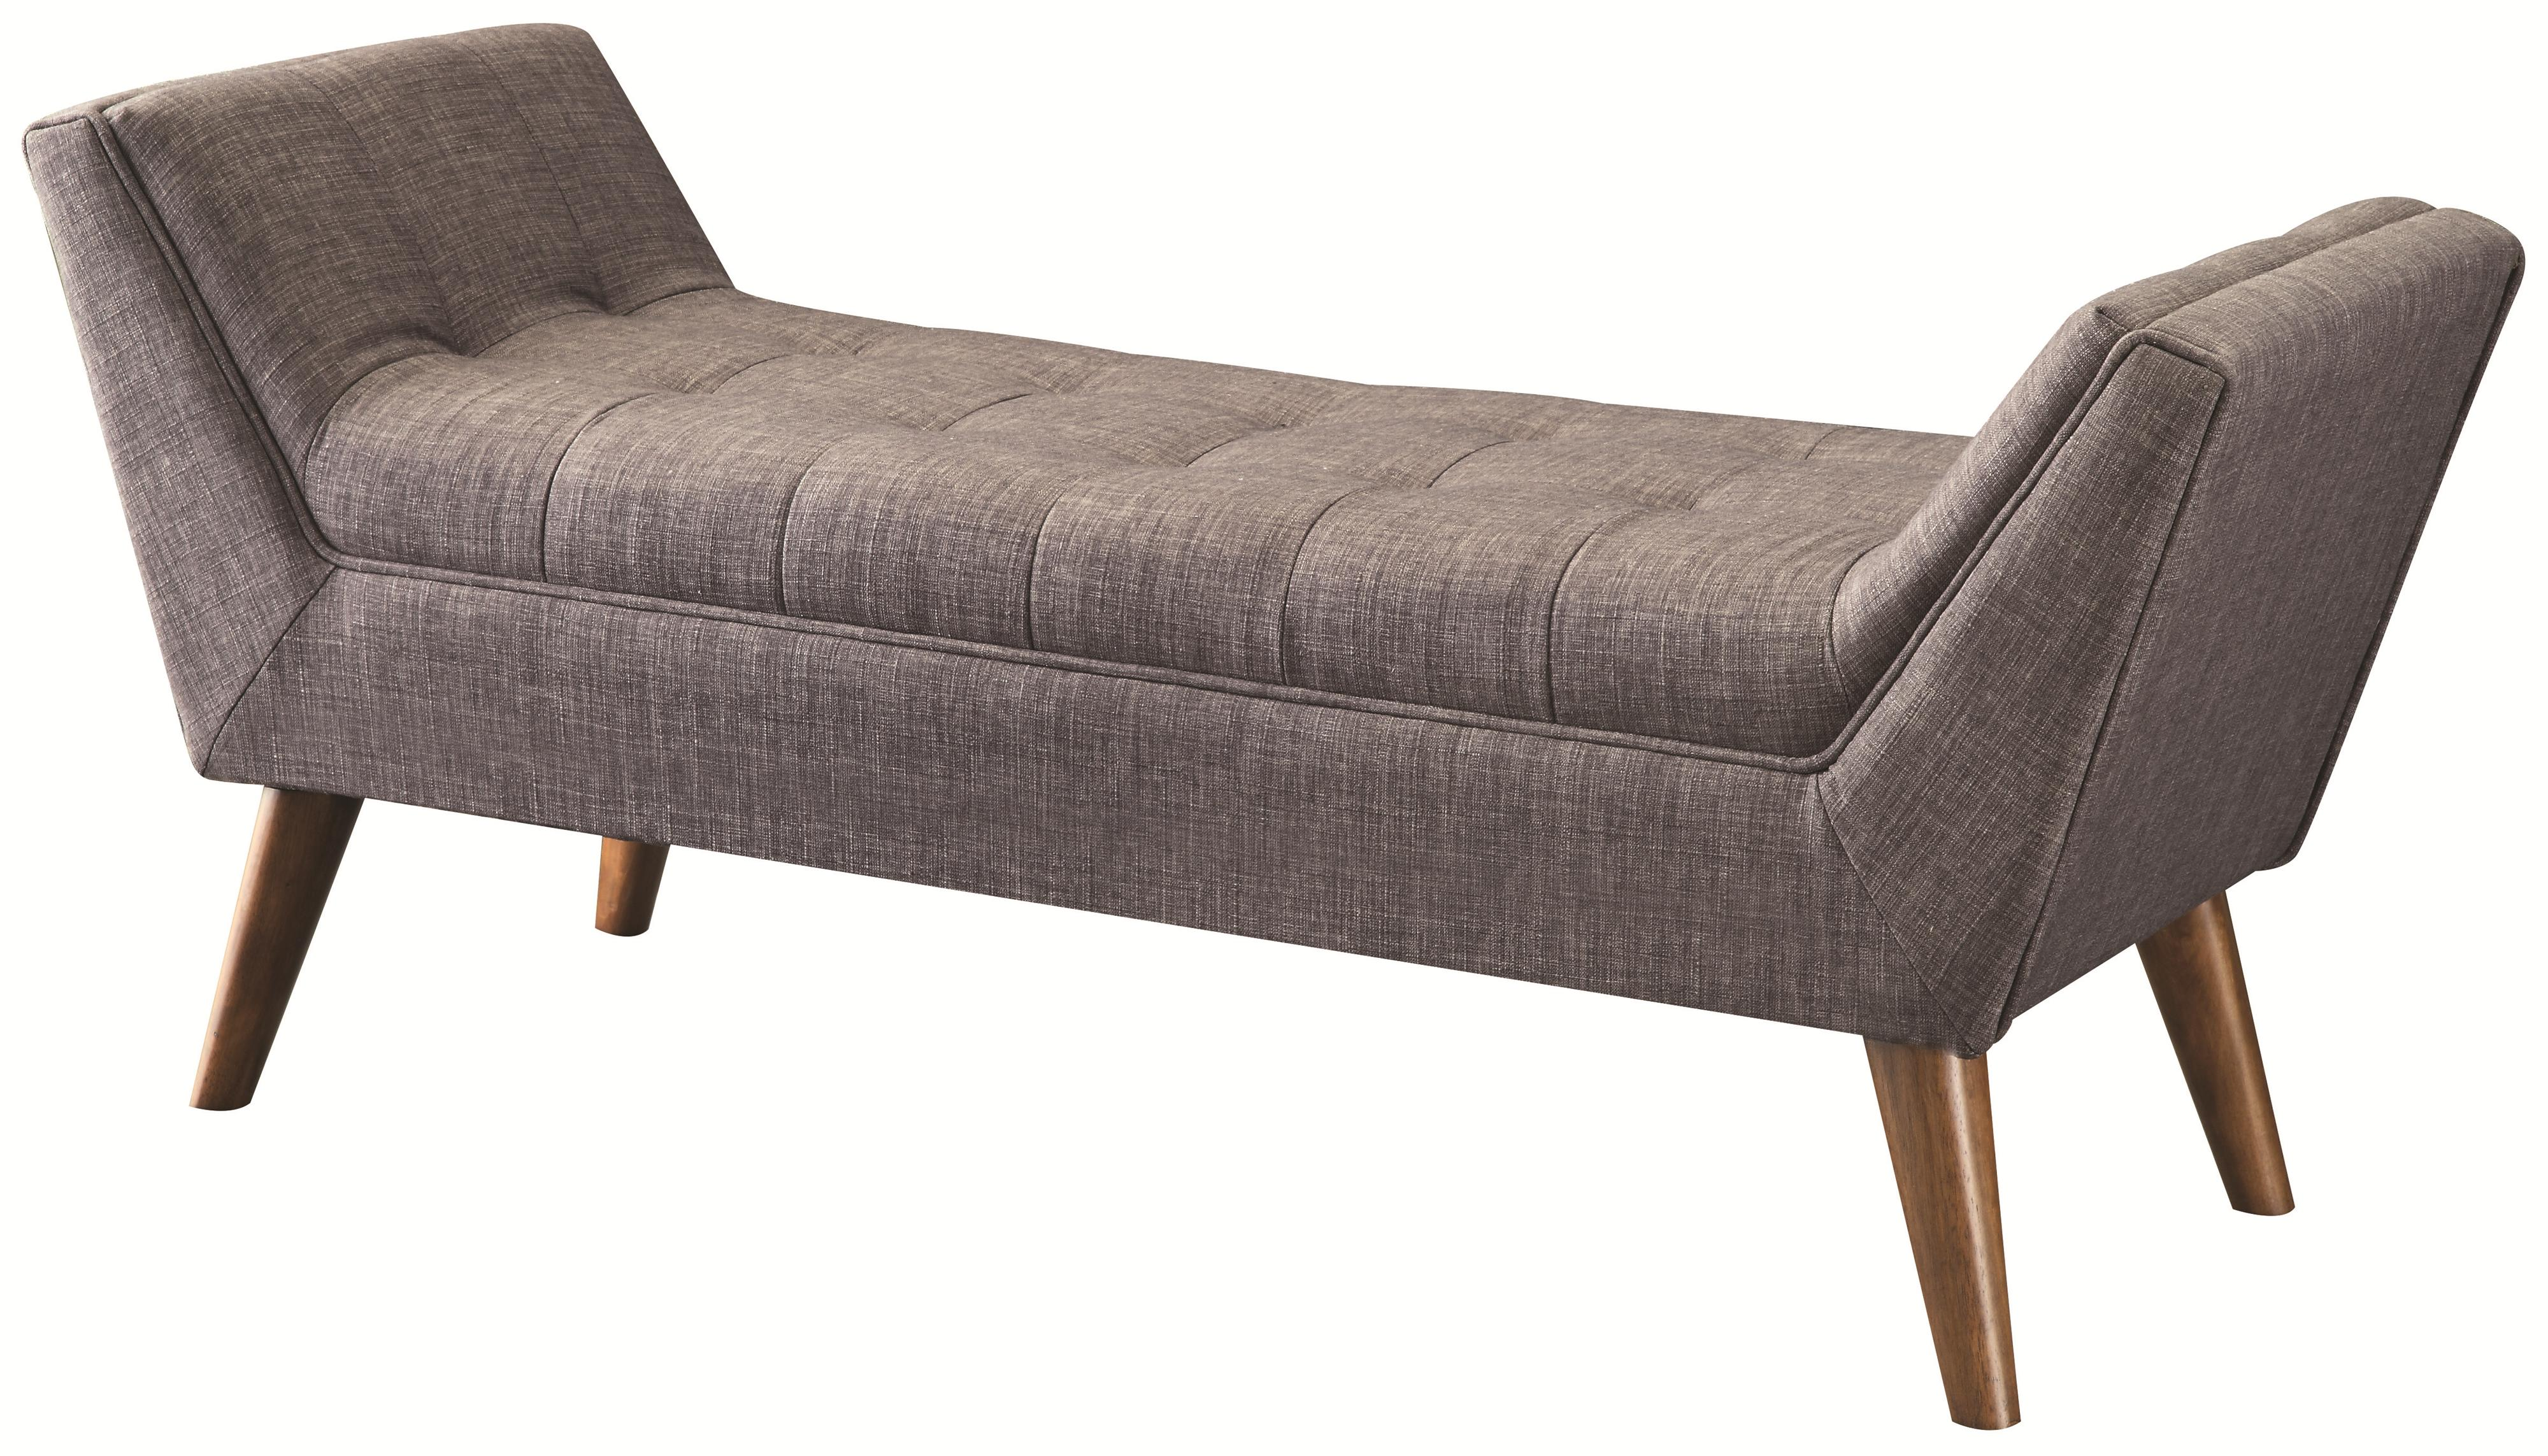 Benches Bench by Coaster at HomeWorld Furniture